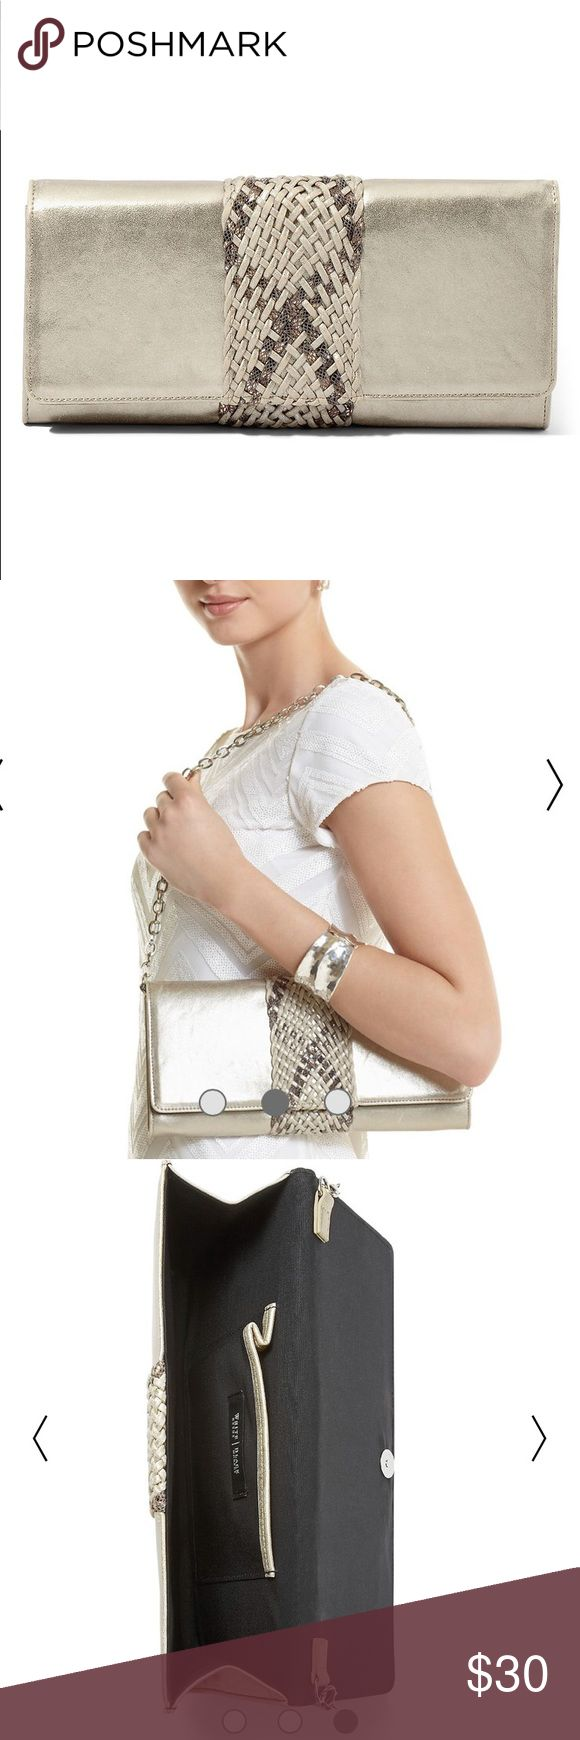 """WHBM Woven Metallic Clutch Frosted clutch wrapped with a shimmering braid. Add the Woven Metallic Cork Wedge and Belt for a chic ensemble. Magnetic clasp. Removable drop-in chain. Interior pocket. 11.5"""" L x 1.25"""" W x 5.5"""" H. Polyurethane. Imported. White House Black Market Bags Clutches & Wristlets"""